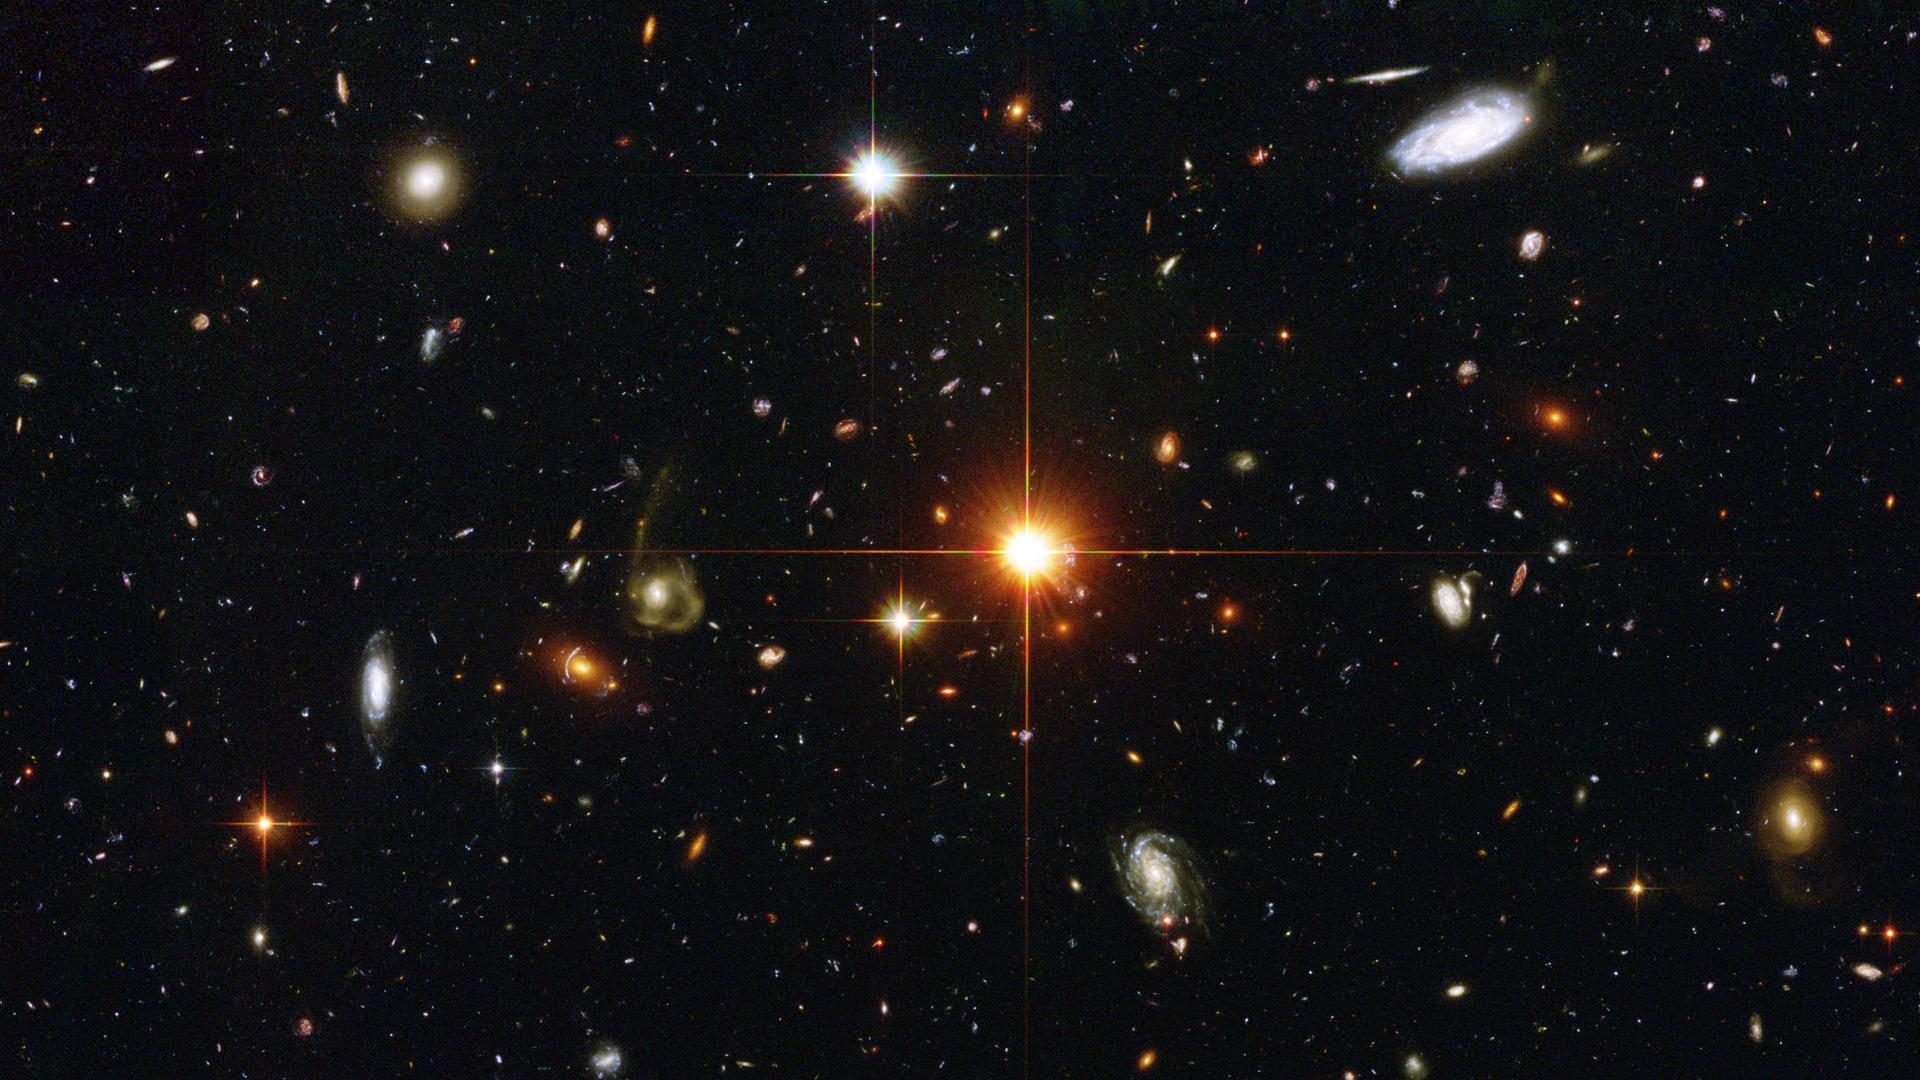 hubble universe hd - photo #36